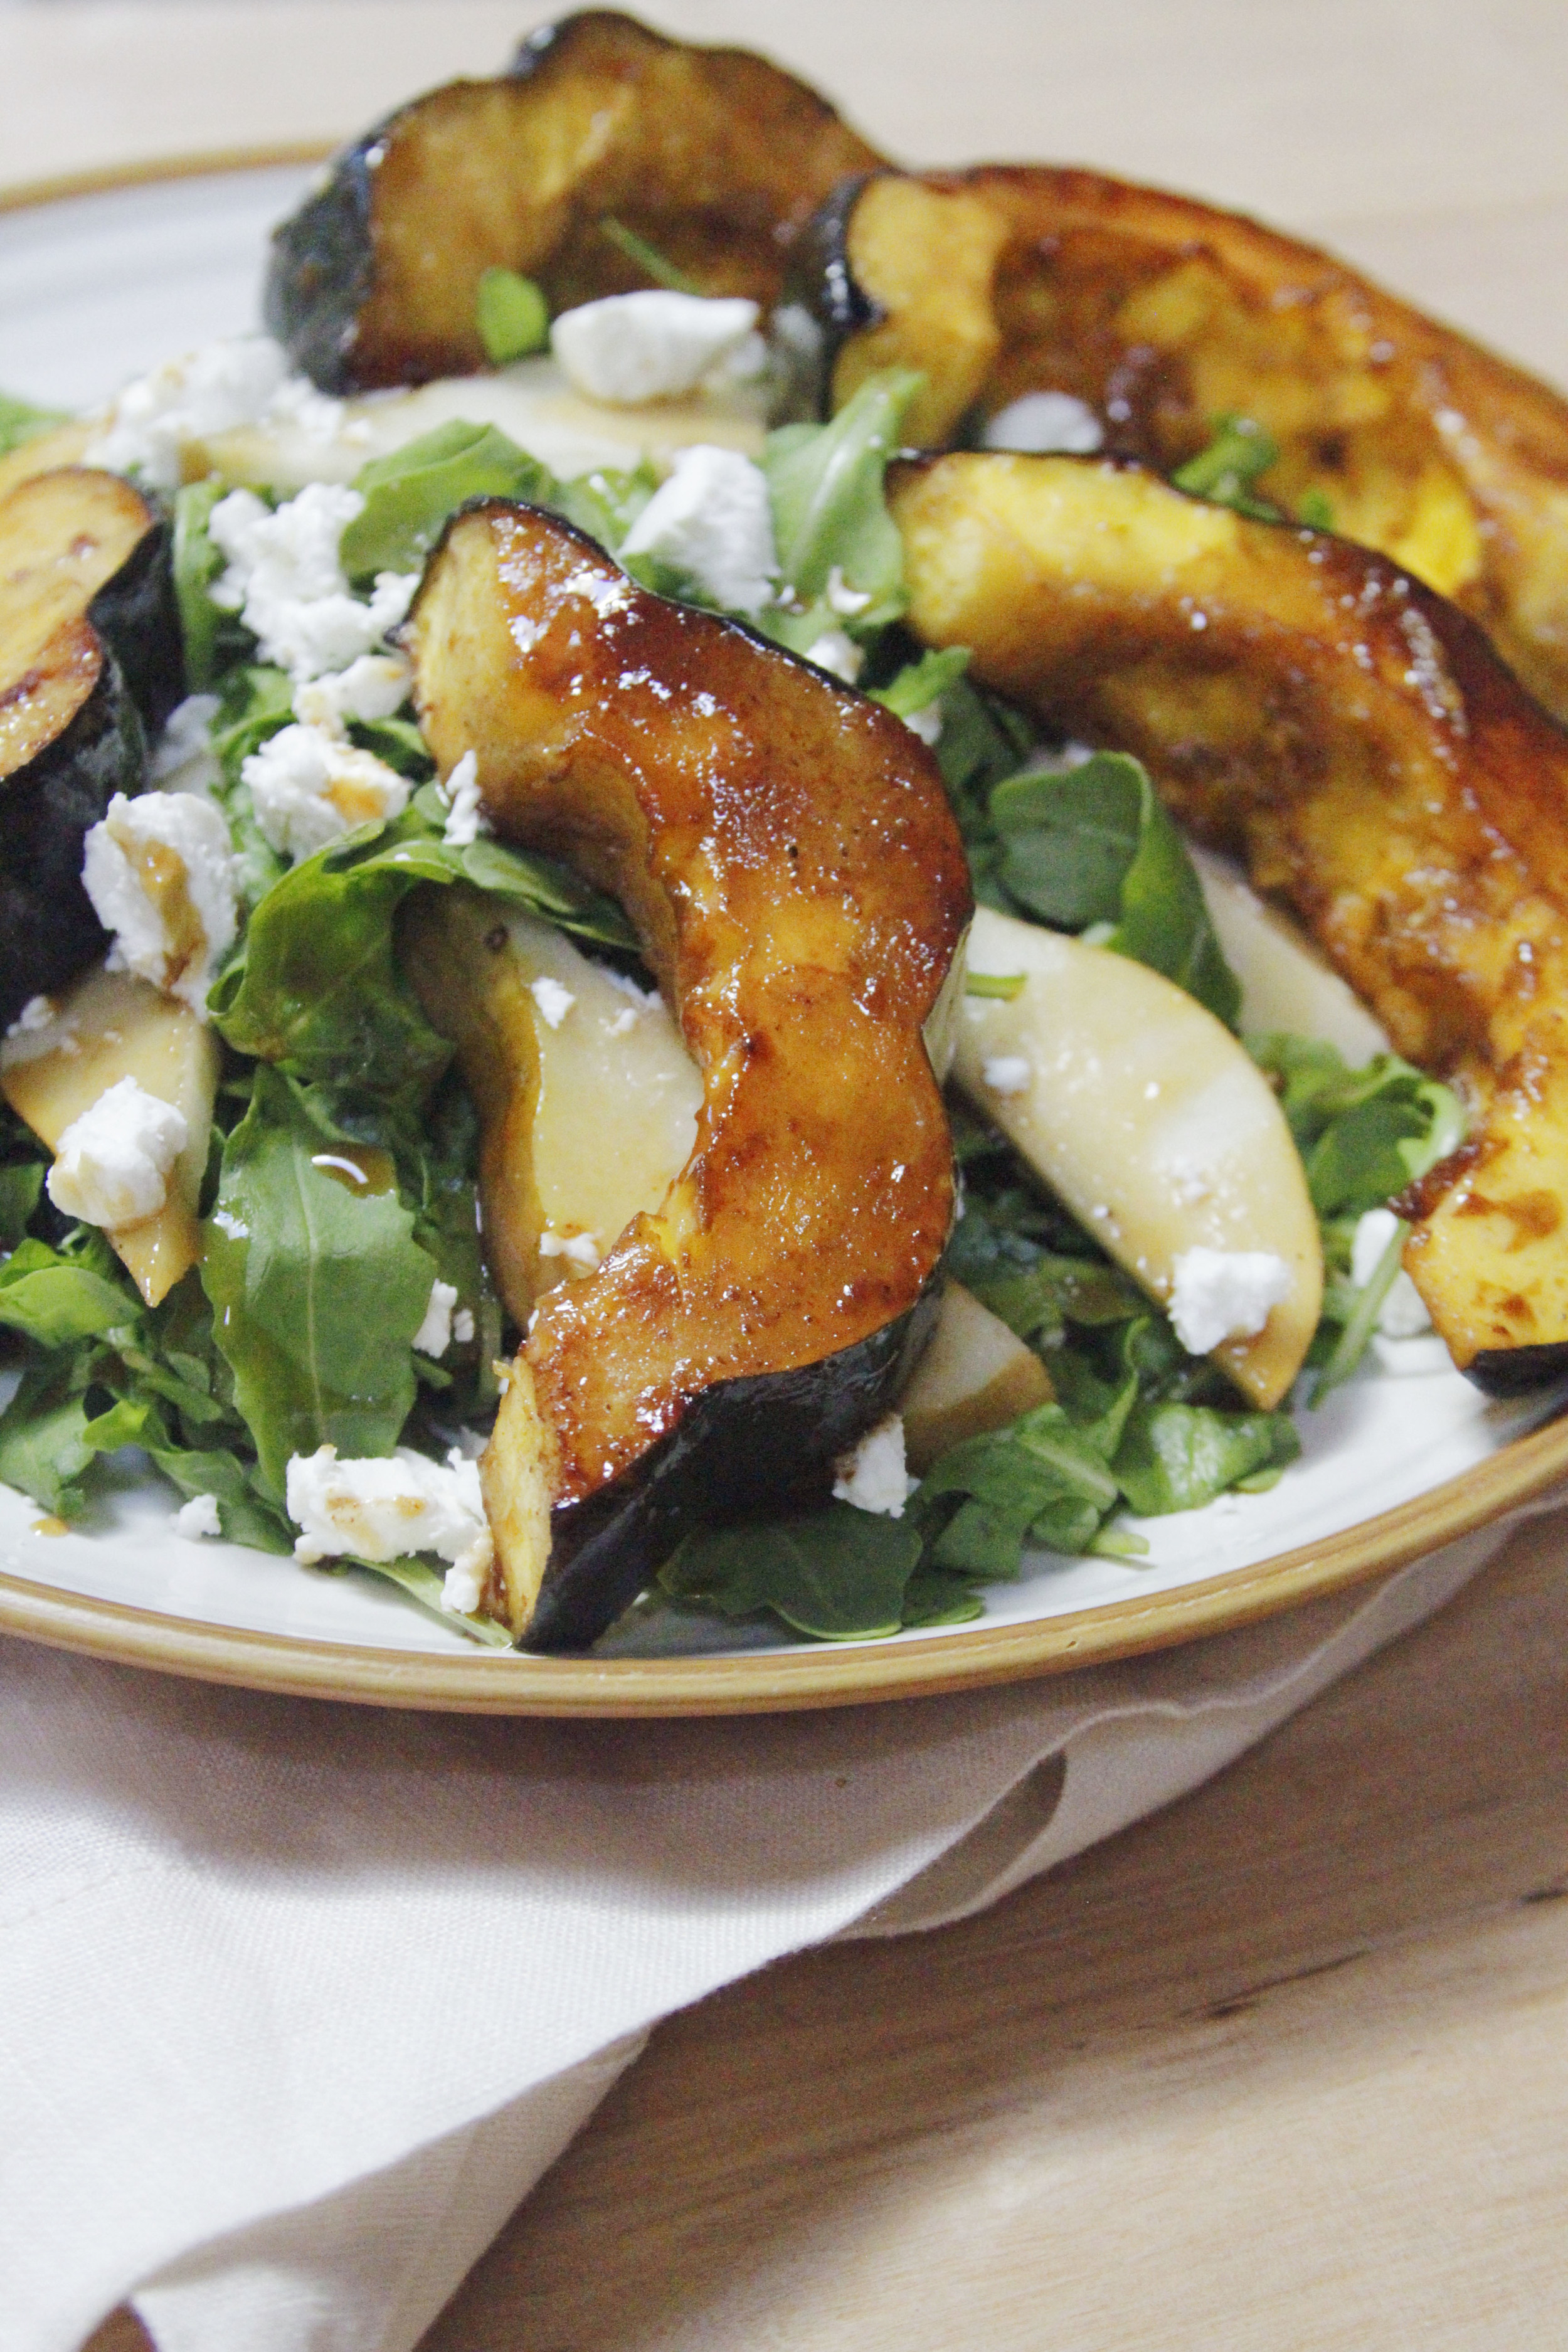 Harvest salad with roasted acorn squash